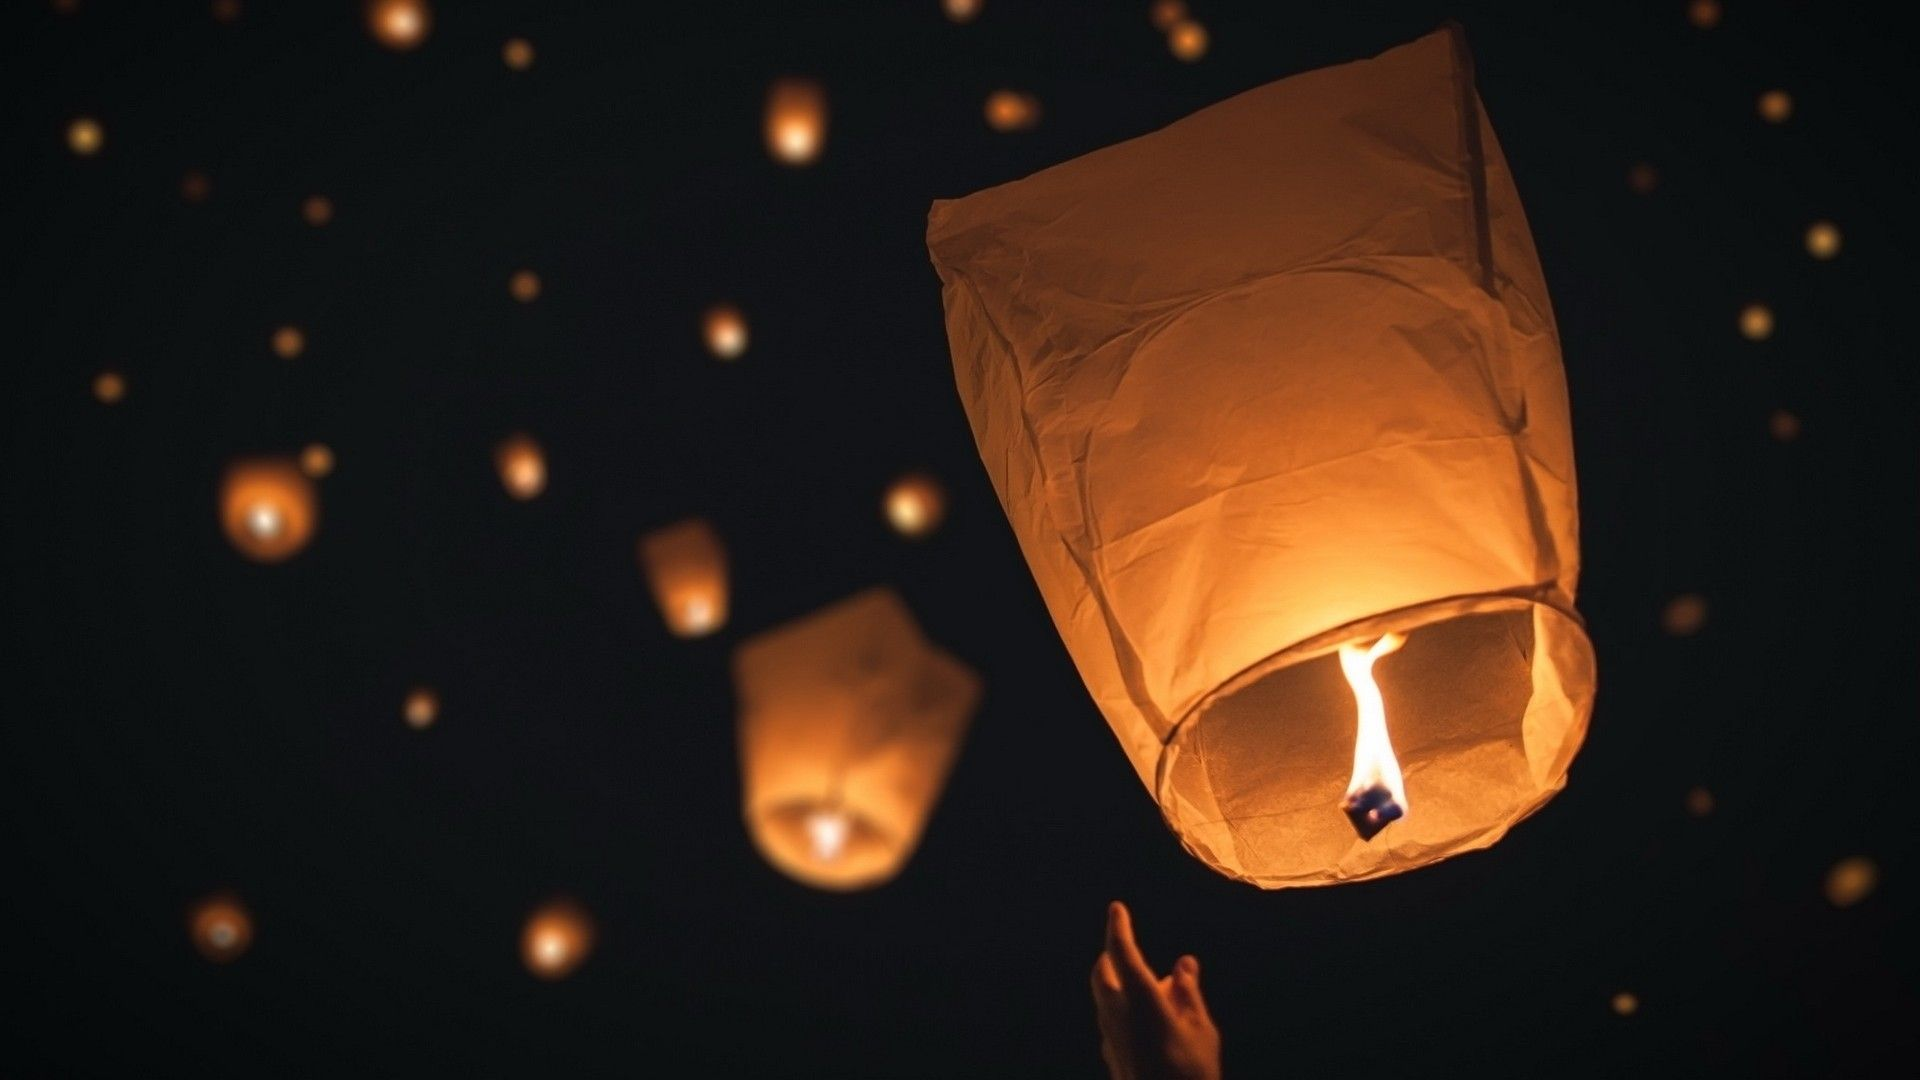 Sky Lanterns Wallpaper Iphone Sky Lantern Wallpapers Top Free Sky Lantern Backgrounds